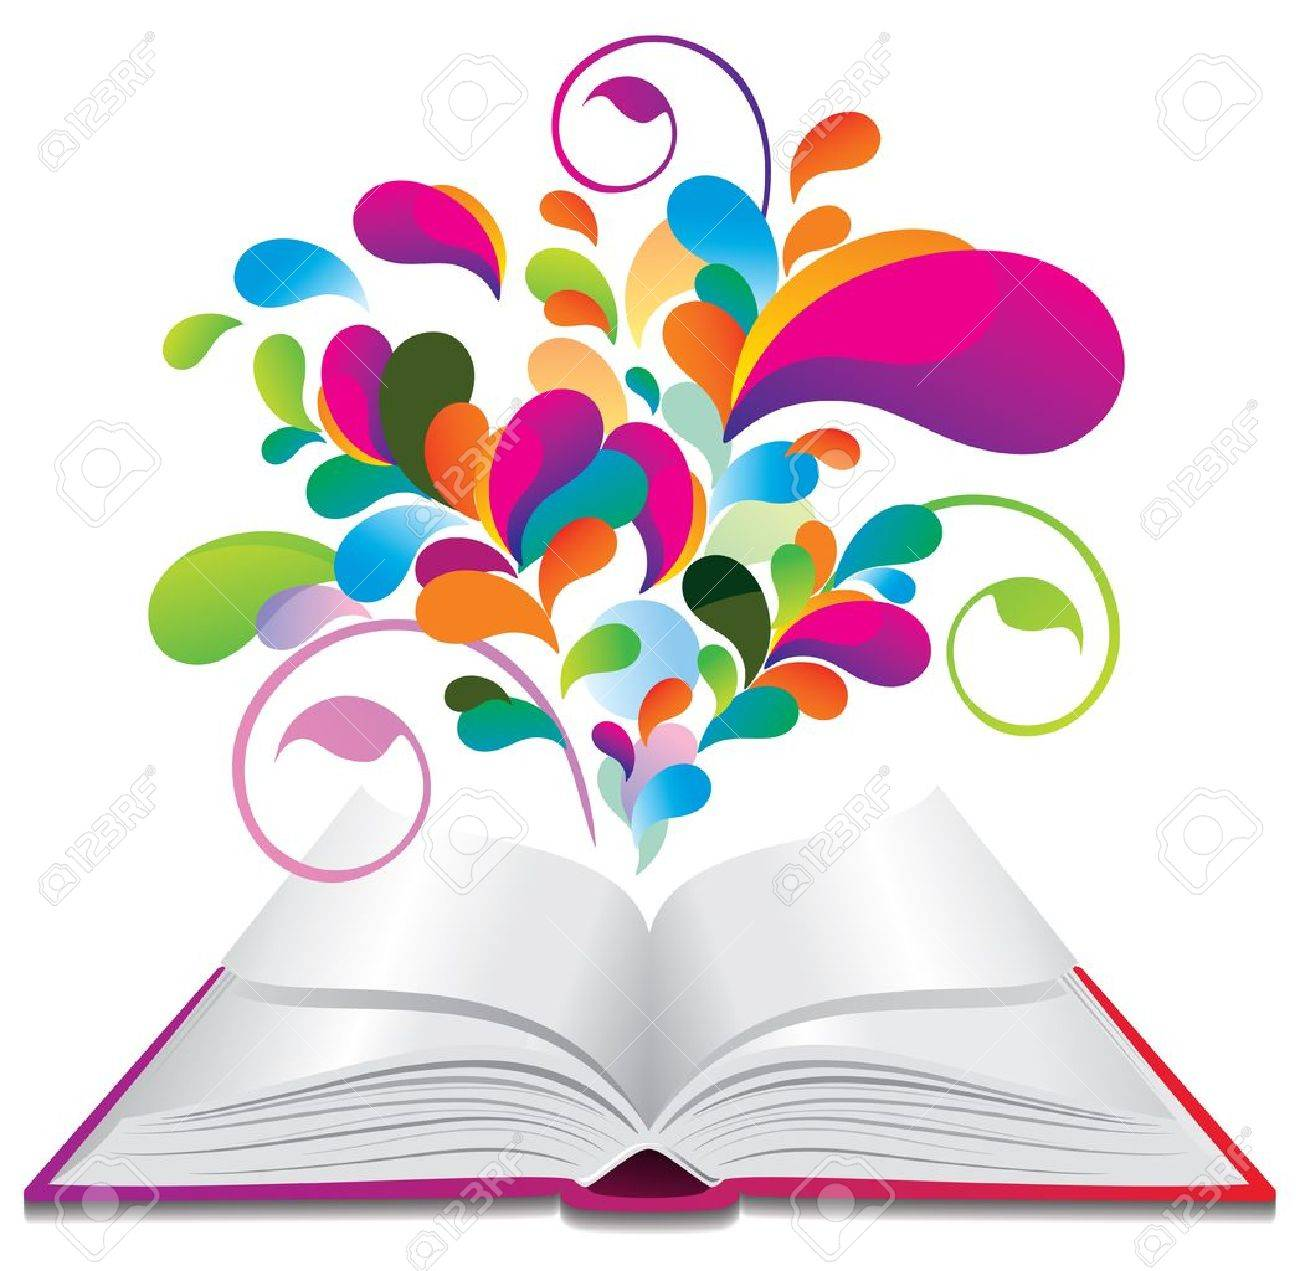 Open book with color splash. Stock Vector - 10812375